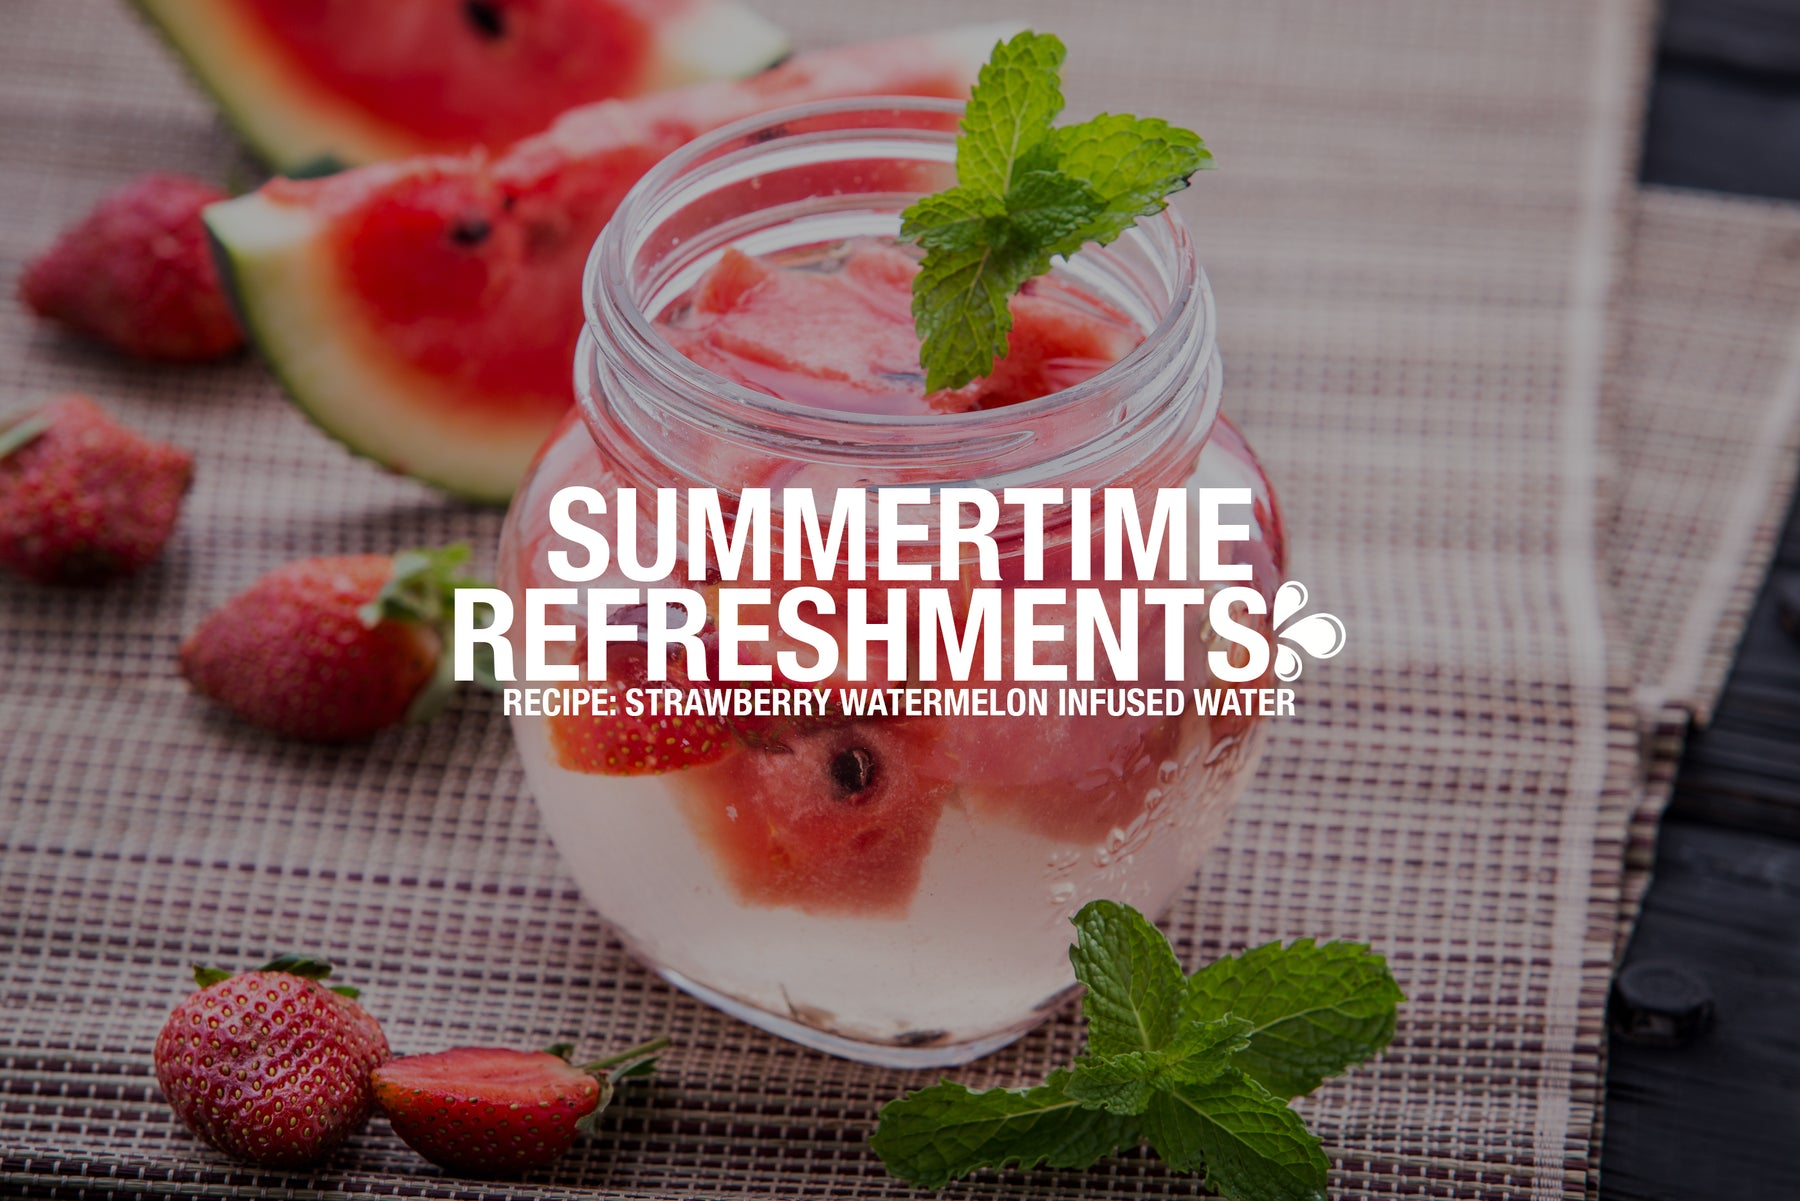 Summertime Refreshments: Strawberry Watermelon Infused Water